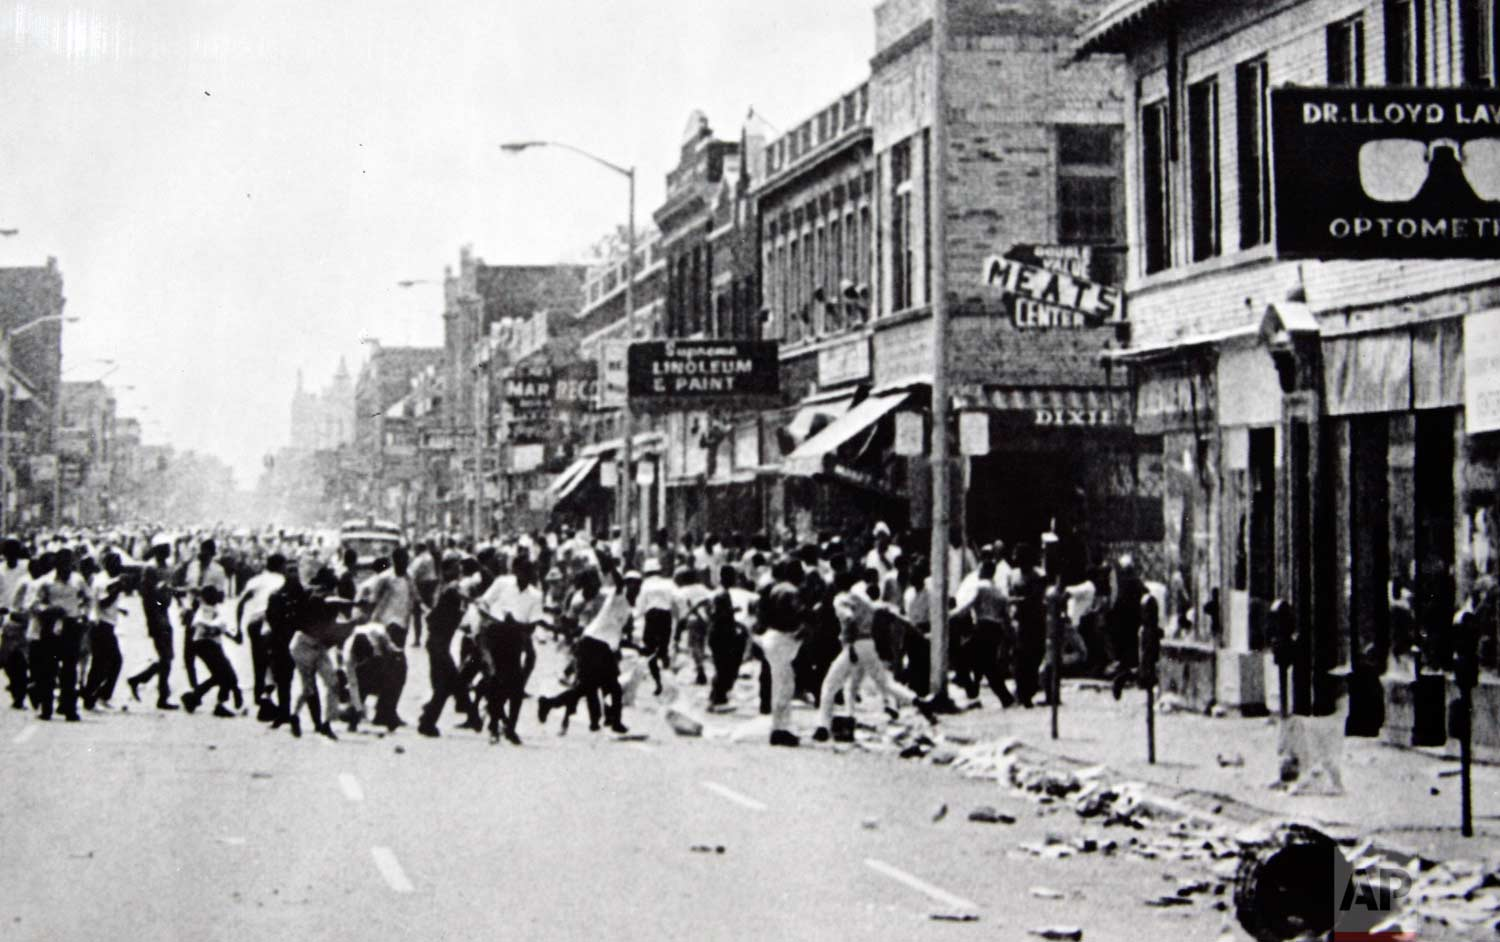 In this July 23, 1967 photo, hundreds of people run down 12th Street on Detroit's westside throwing stones and bottles at storefronts. The riot started after police raided an after-hours club in a predominantly African-American neighborhood. The raid, though, was just the spark. Many in the community blamed frustrations blacks felt toward the mostly white police, and city policies that pushed families into aging and over-crowded neighborhoods. (AP Photo)